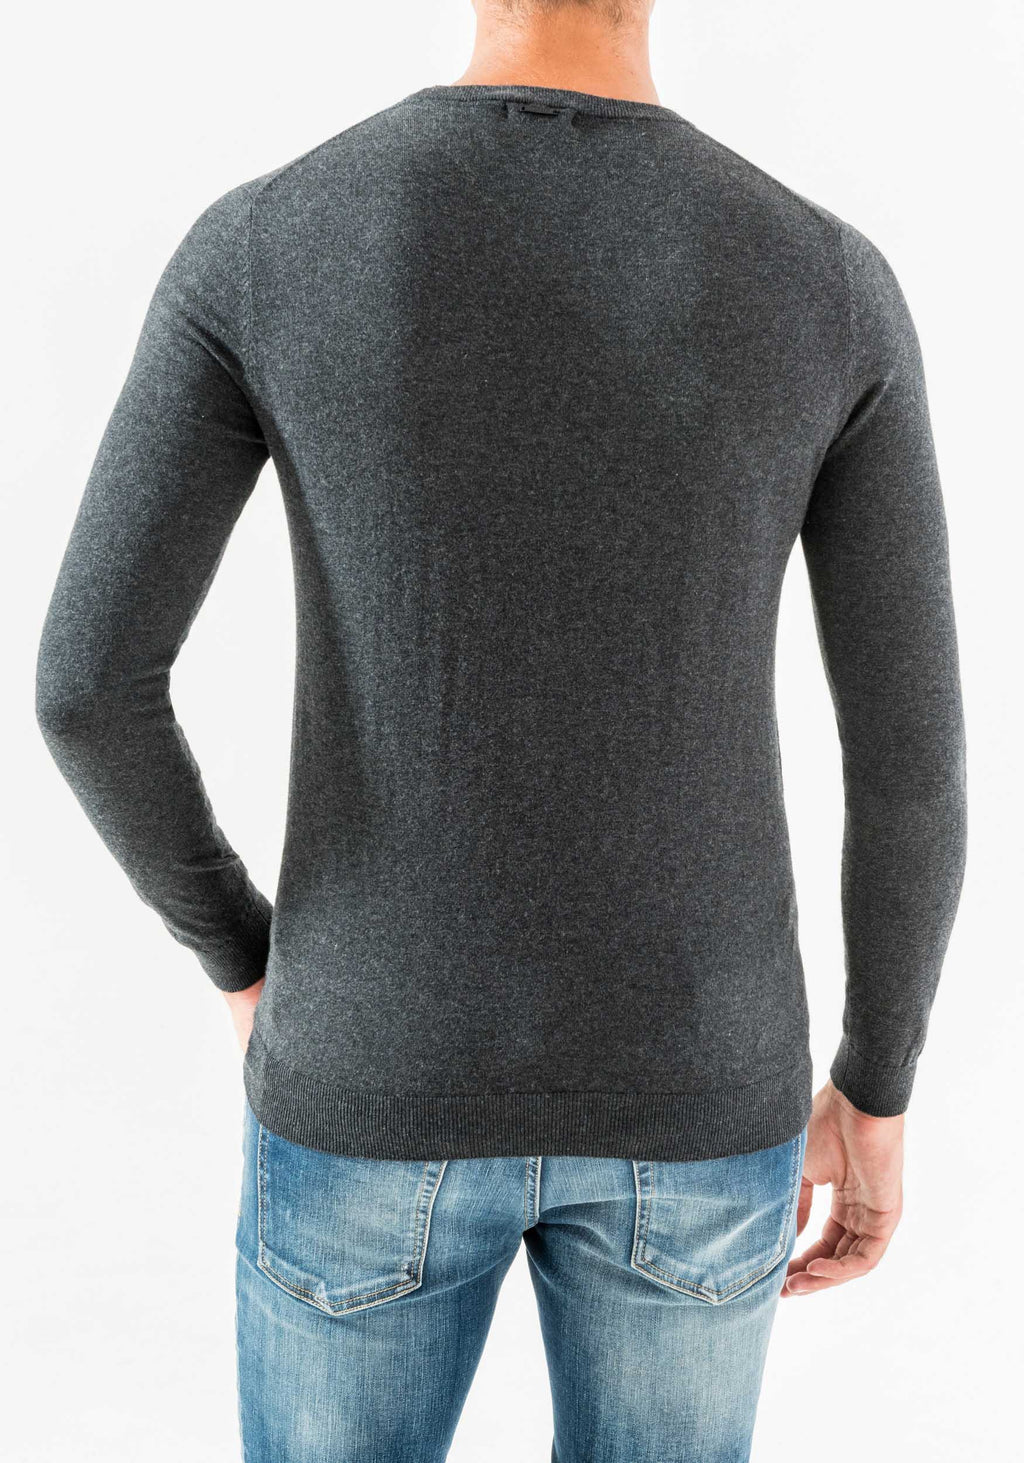 Antony Morato Crew Neck Sweater in Cotton & Cashmere